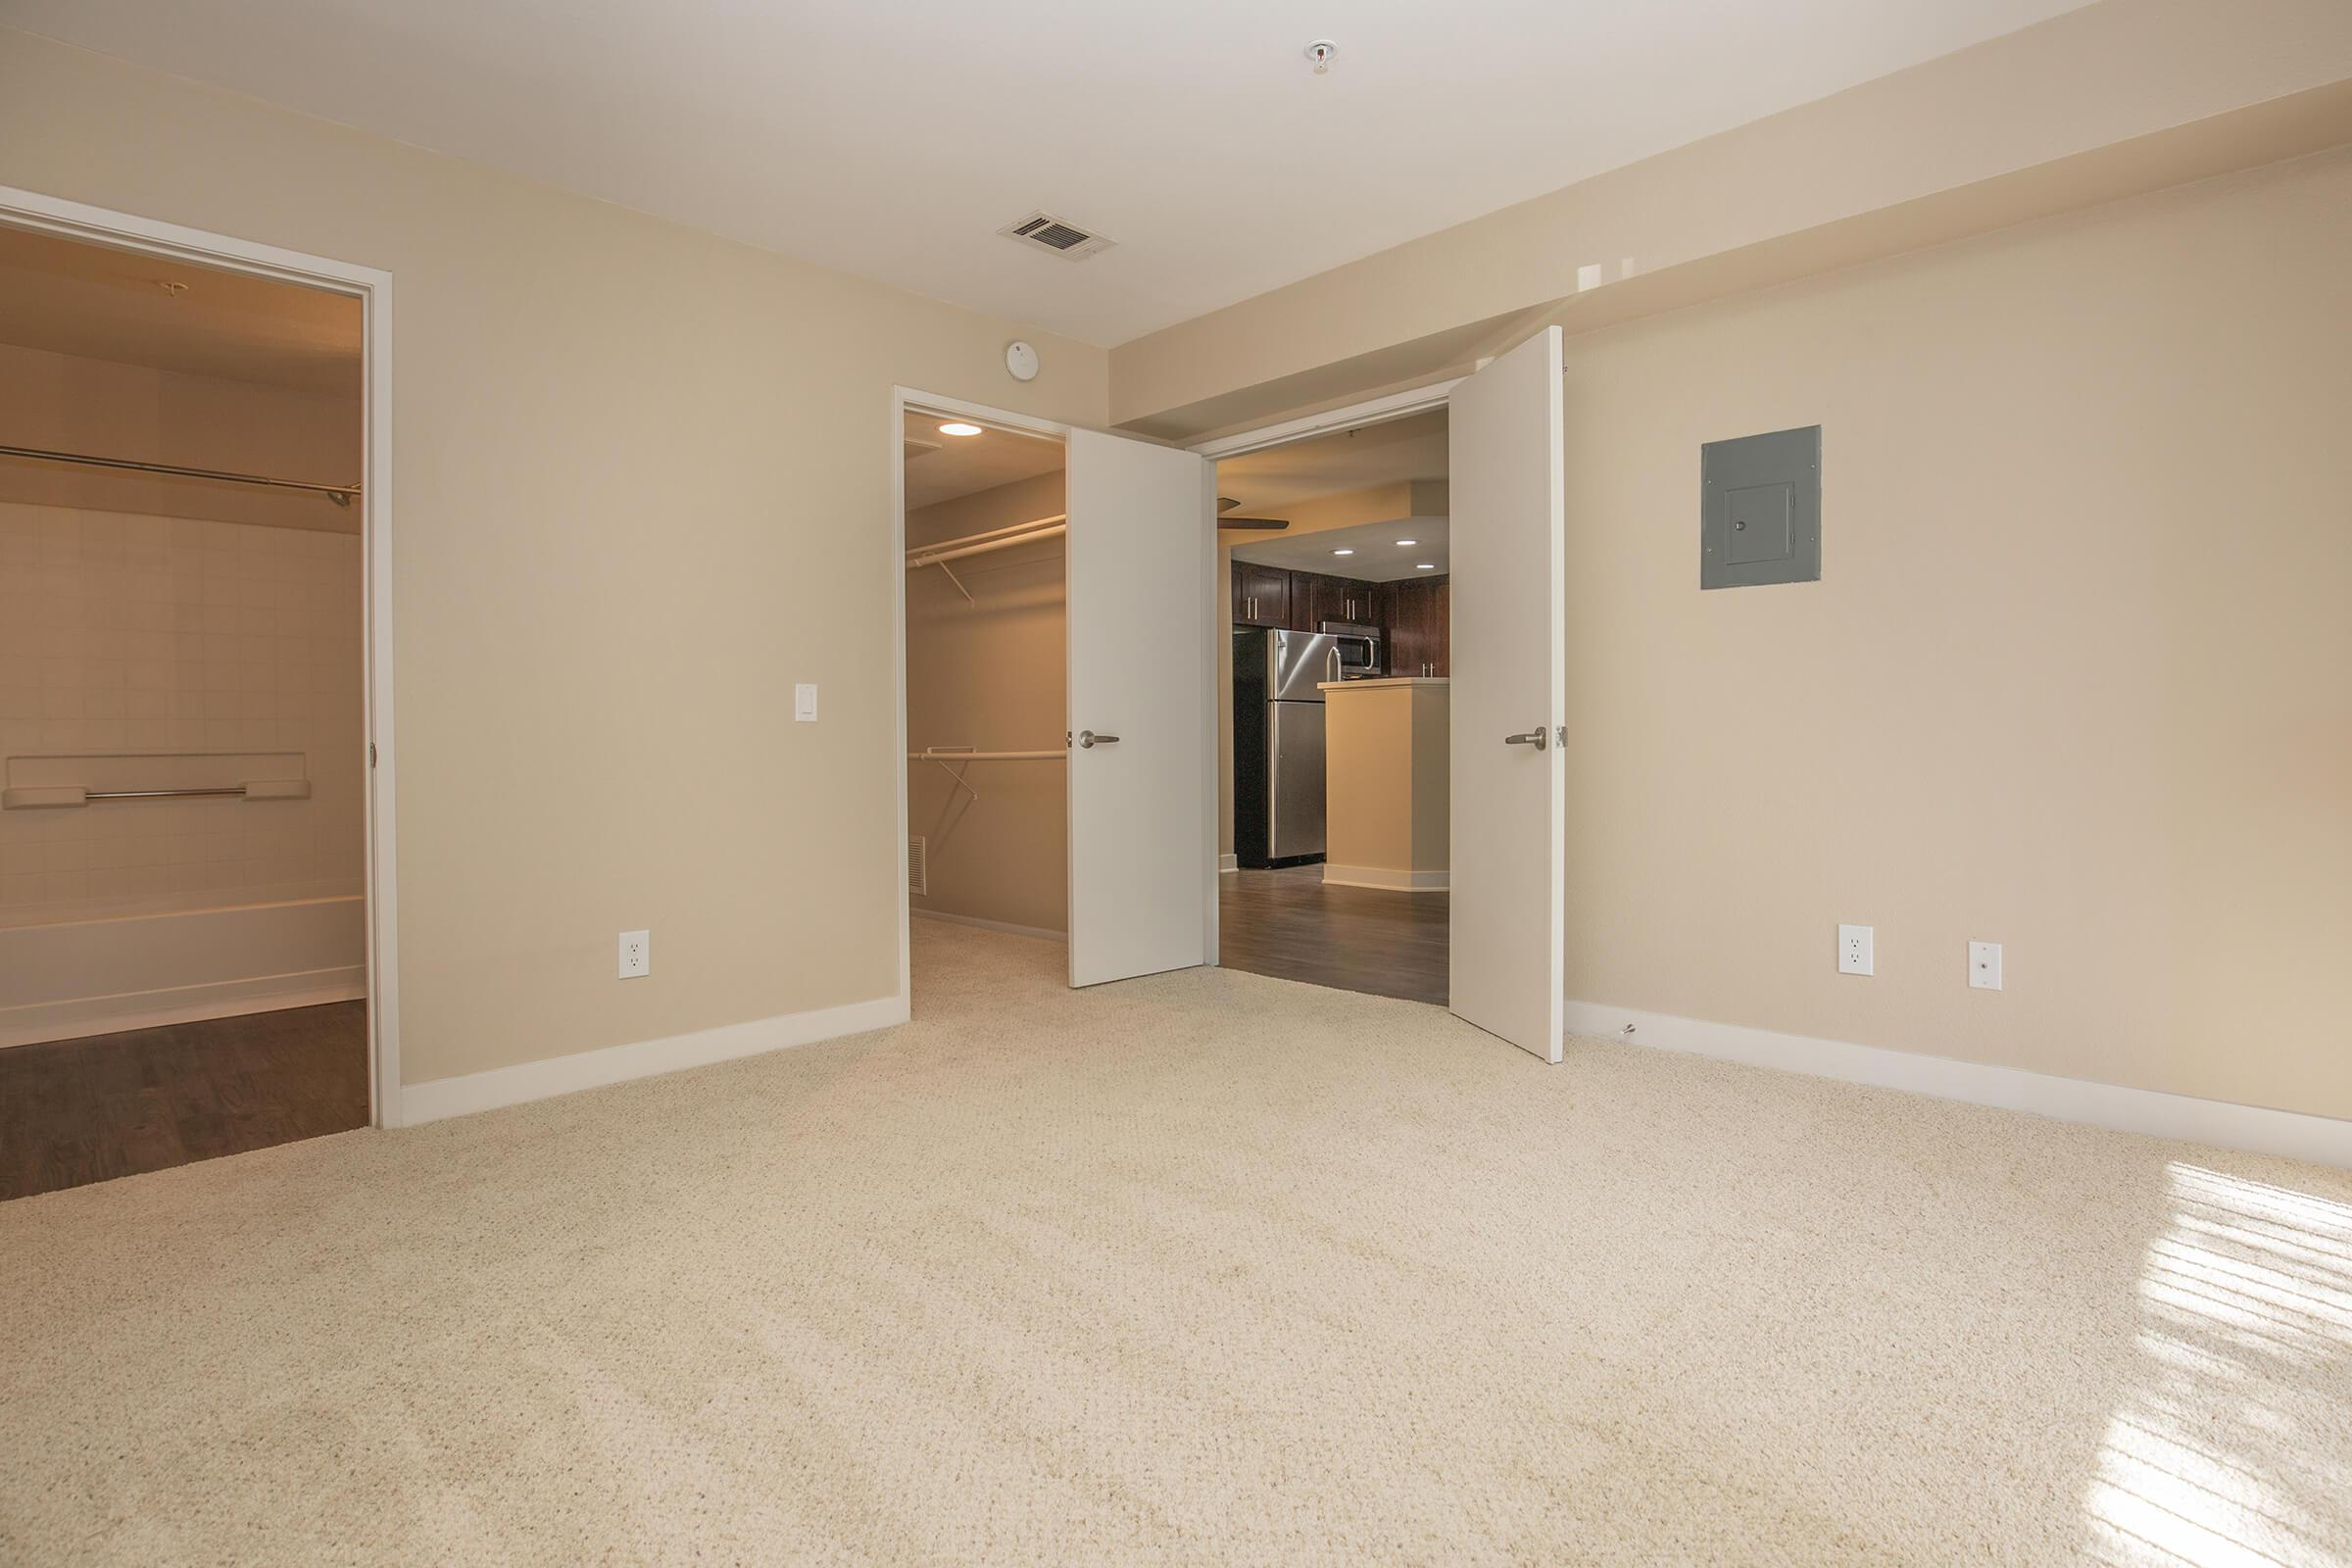 Vacant master bedroom with closet and bathroom